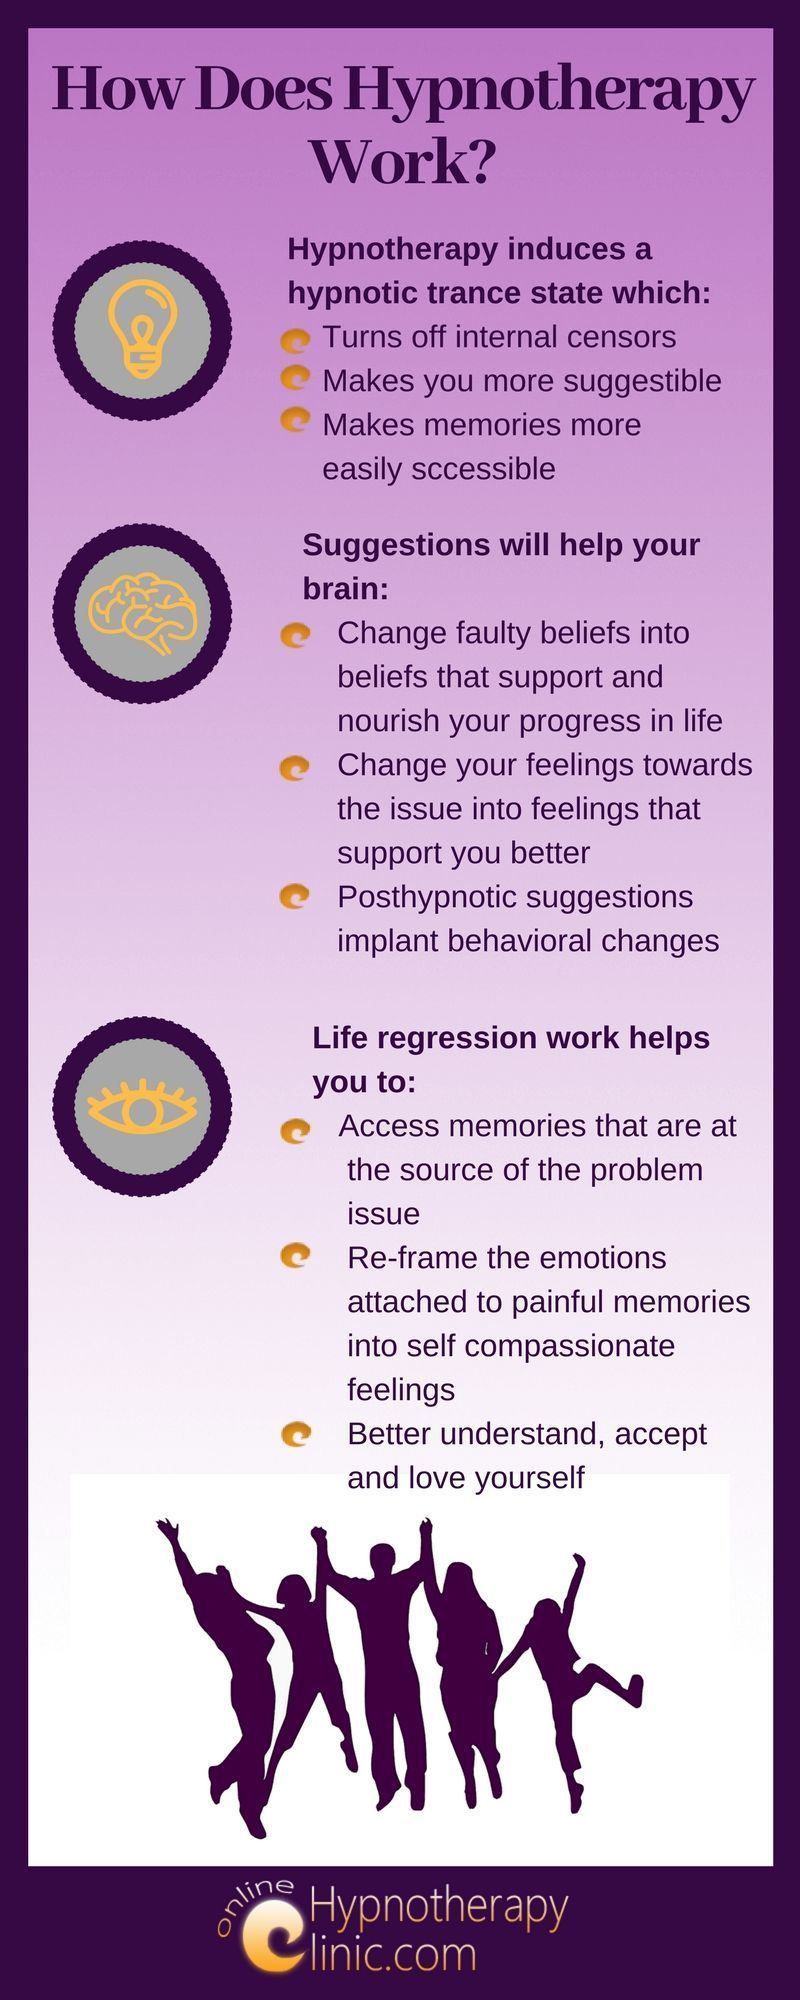 How Does Hypnotherapy Work? | Hypnotherapy/Psychotherapy